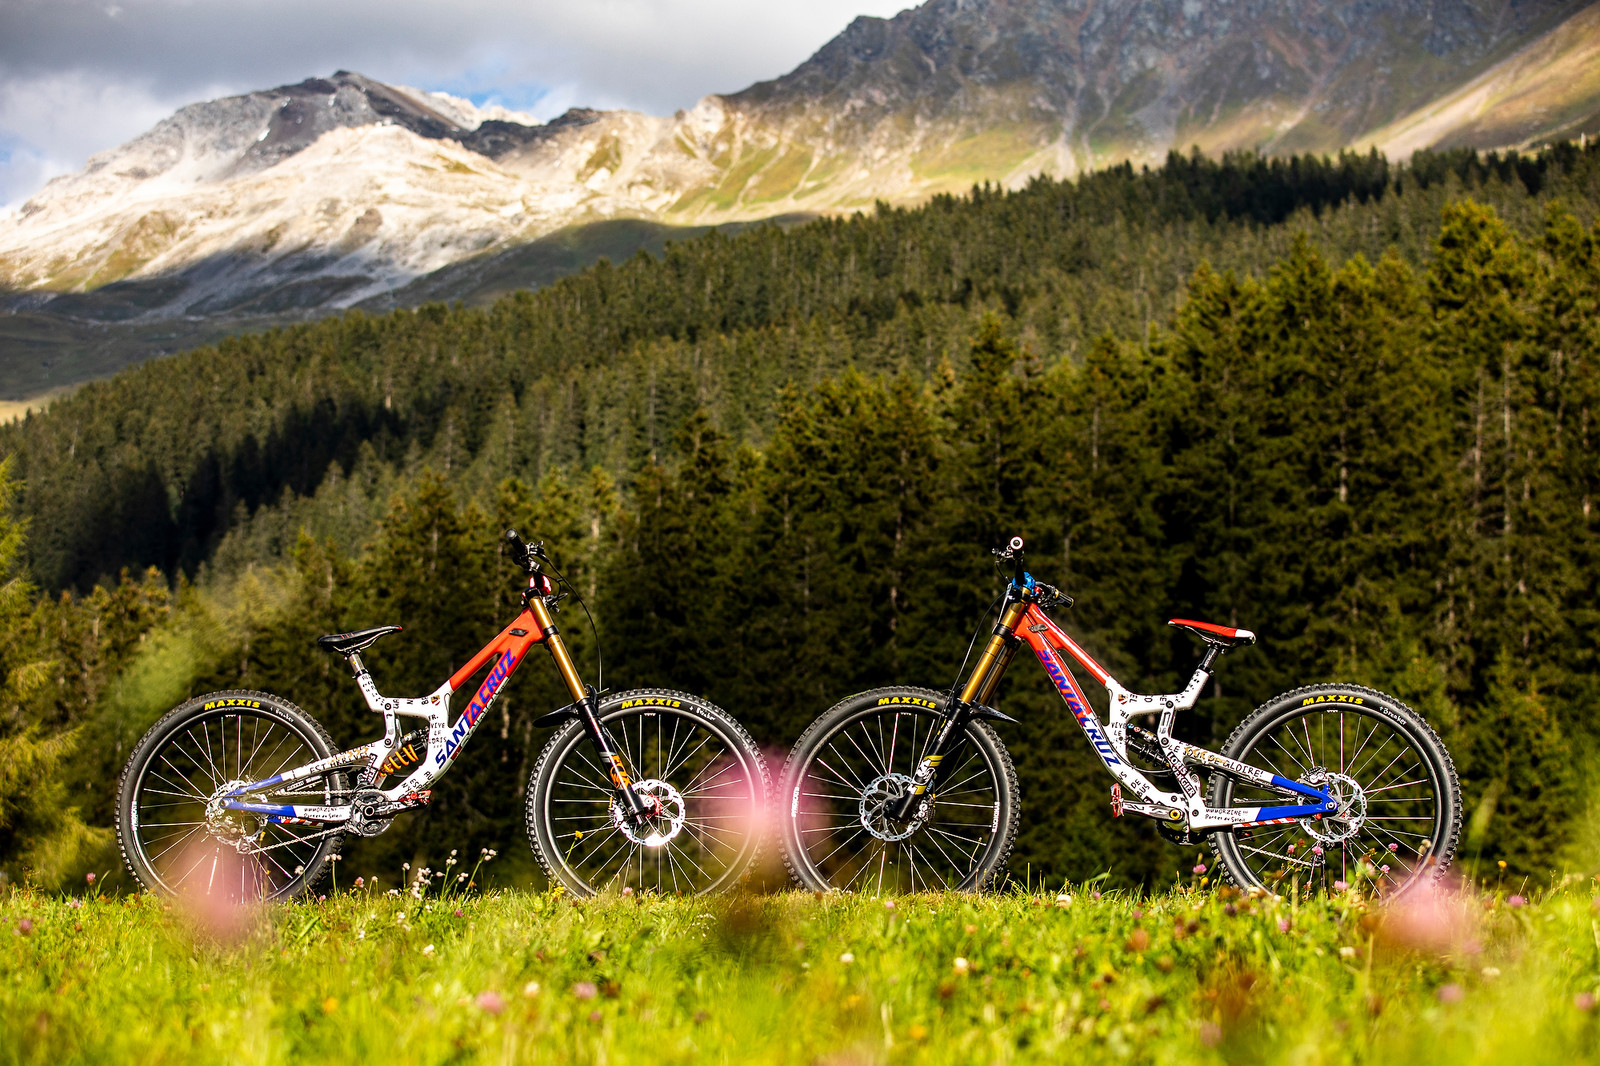 Two Bikes for Loris Vergier at World Champs - WORLD CHAMPS BIKES - Loris Vergier's Santa Cruz V10s - Mountain Biking Pictures - Vital MTB